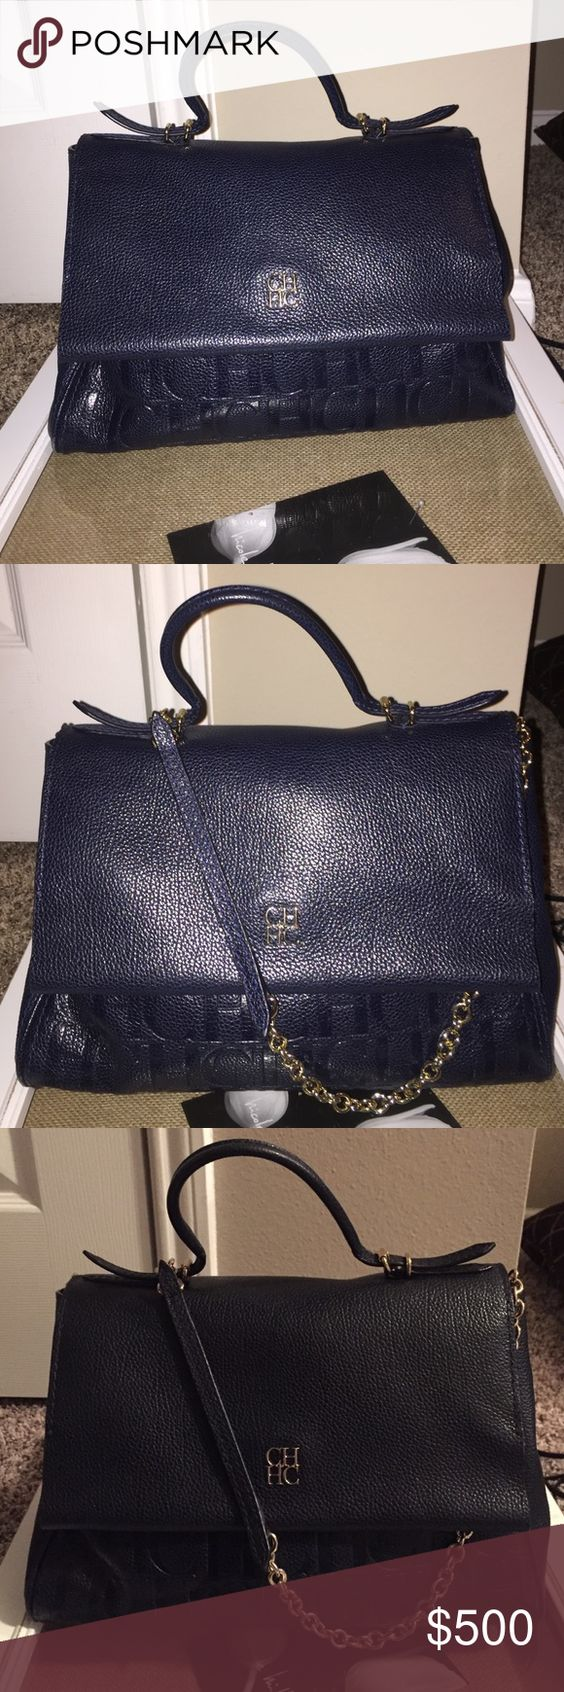 CH Carolina Herrera Tempo handbag. Navy blue with CH tattoo on the front. Purchased 4 months ago used 4 times. ch carolina herrera Bags Shoulder Bags